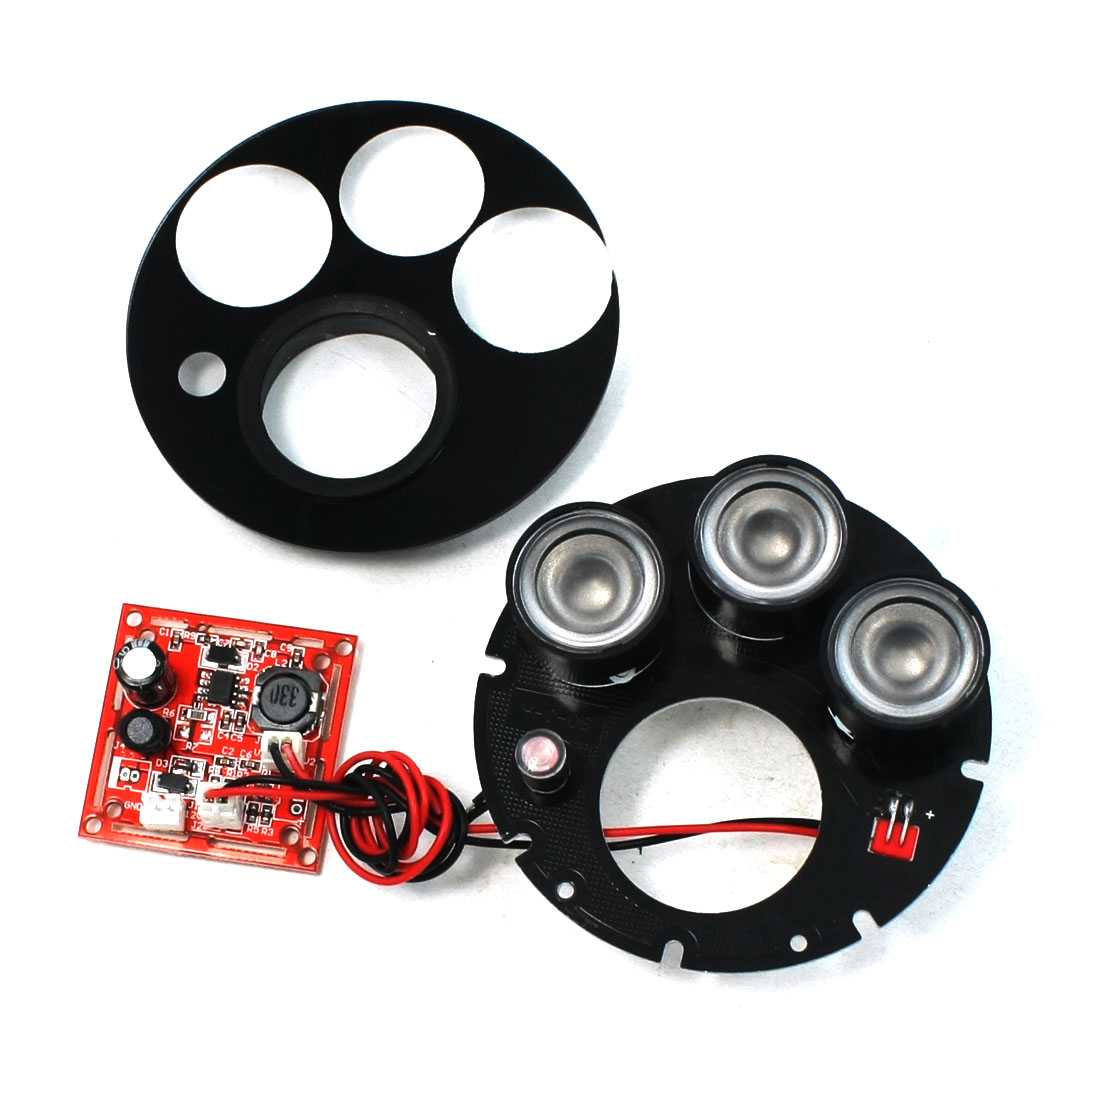 CCTV CCD Camera 80 Degree Red 3 LED IR Illuminator Infrared Round Board